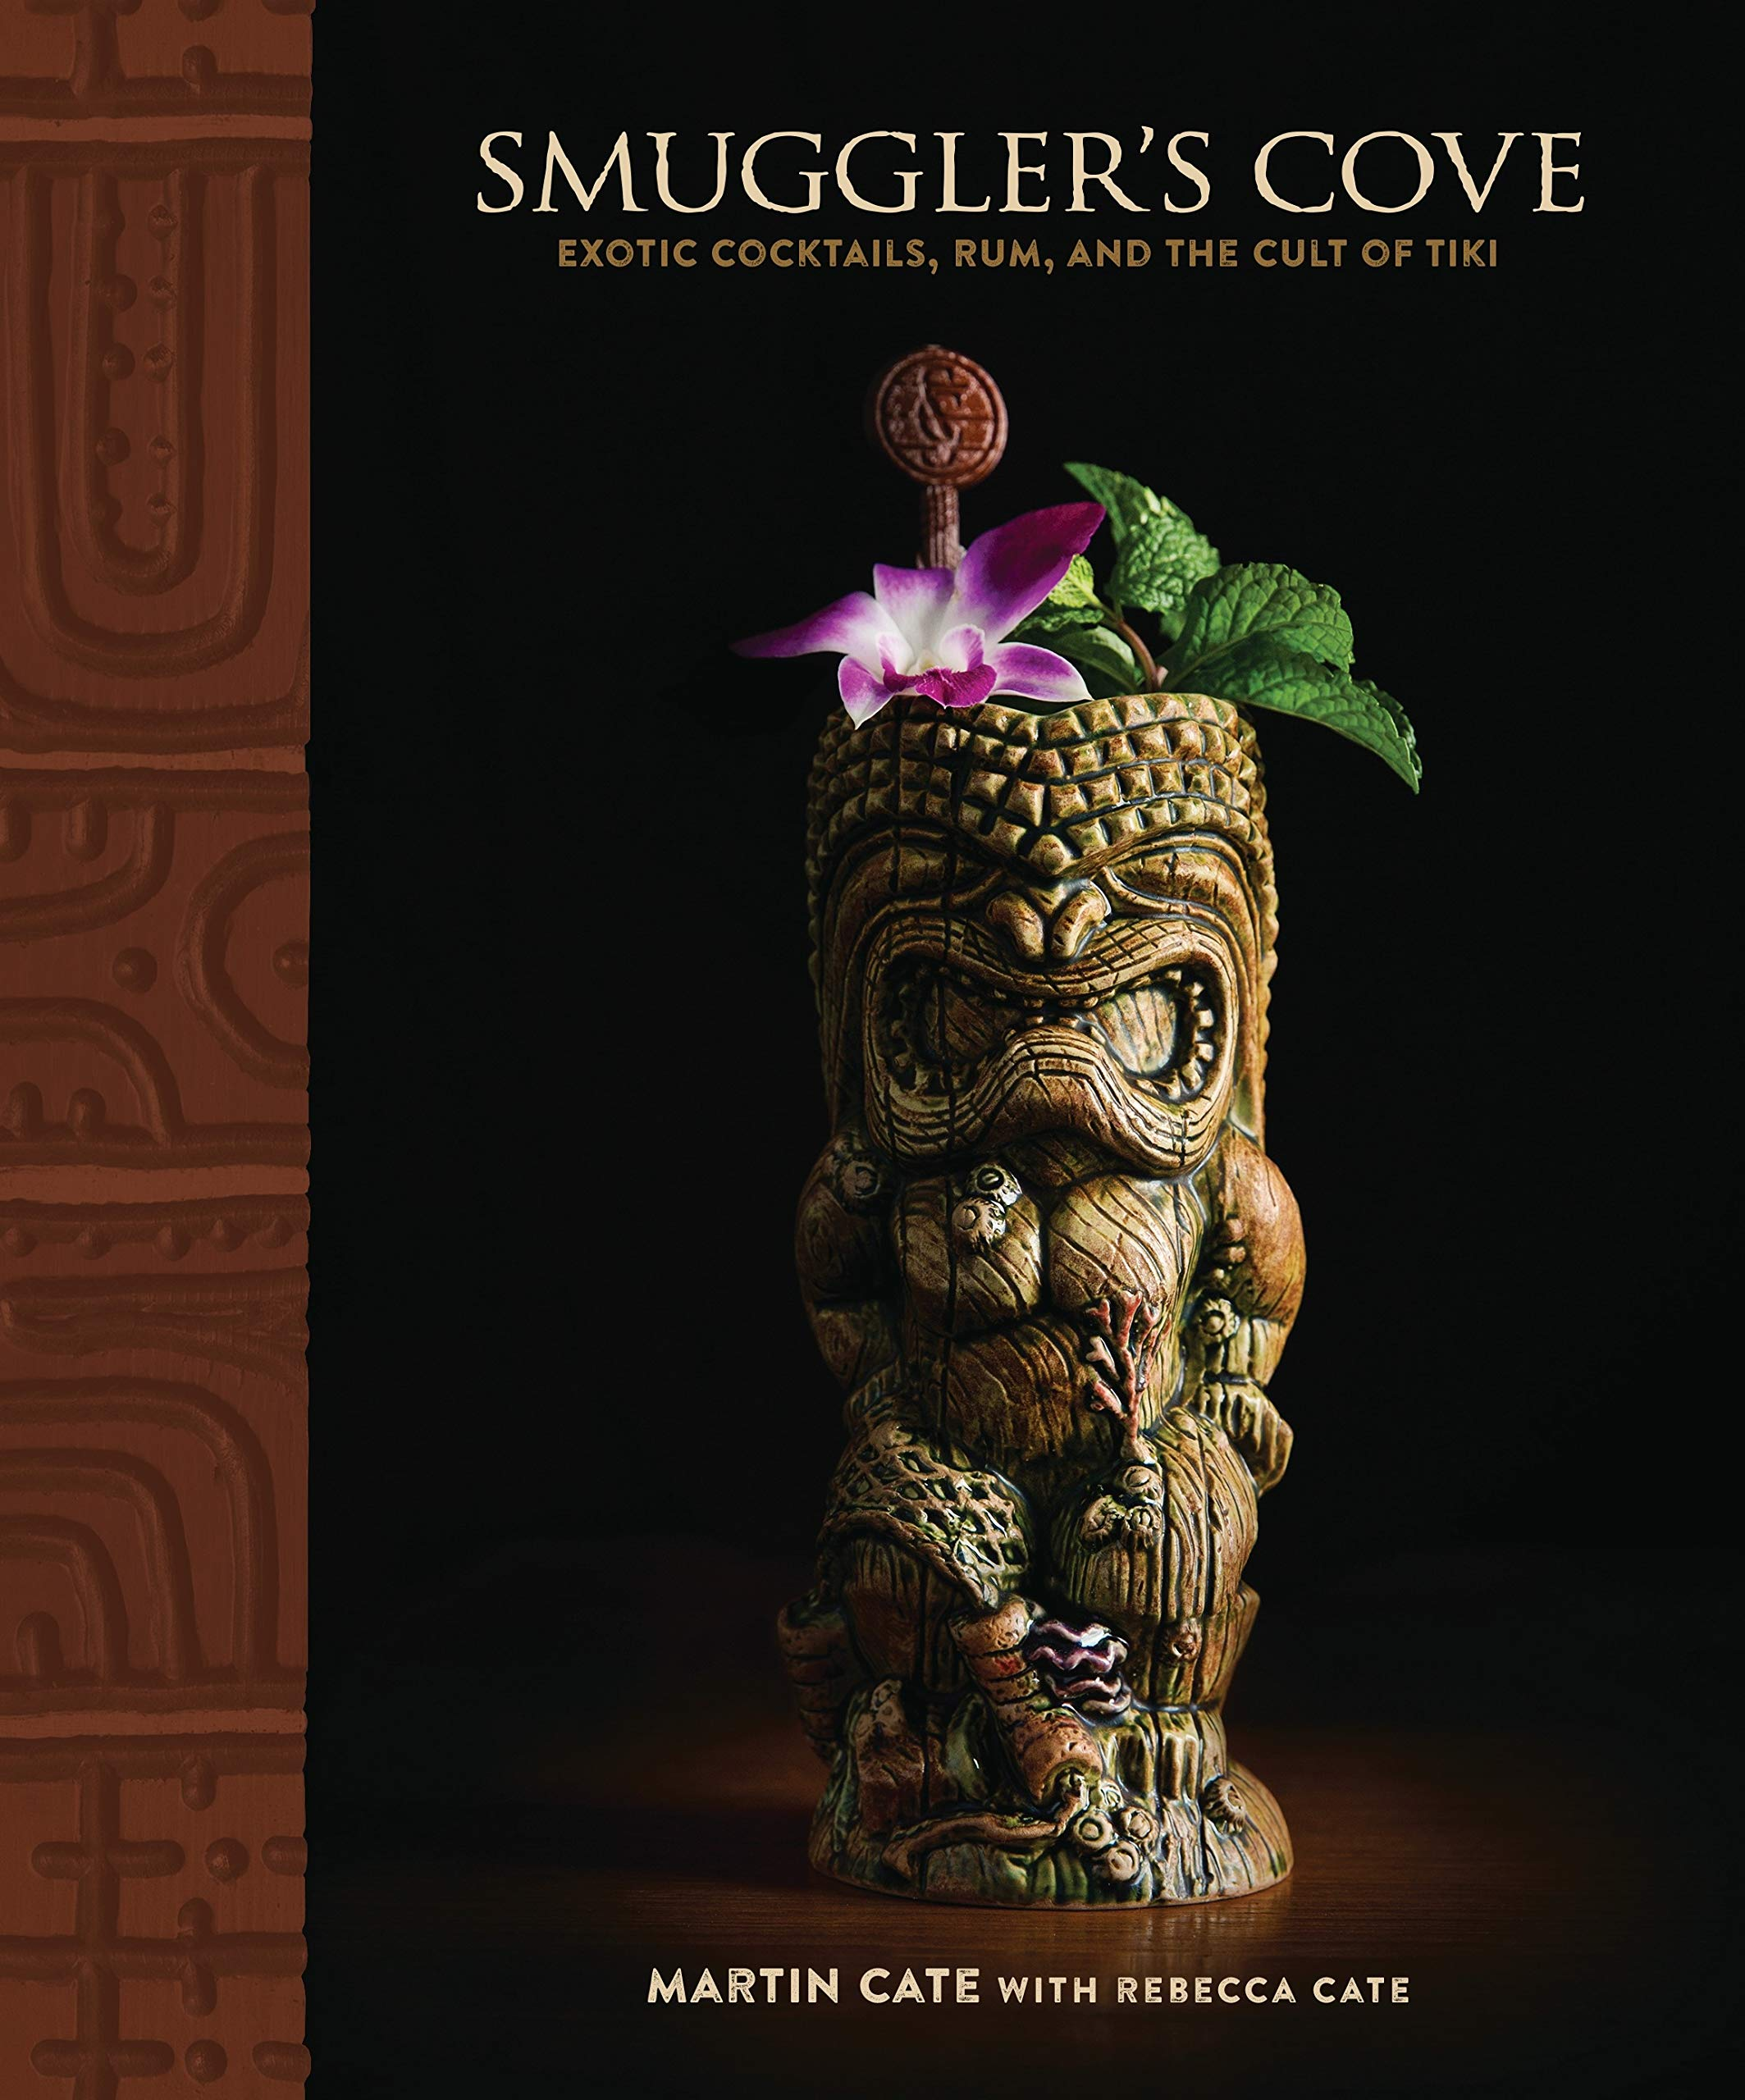 Download Smuggler's Cove: Exotic Cocktails, Rum, And The Cult Of Tiki 